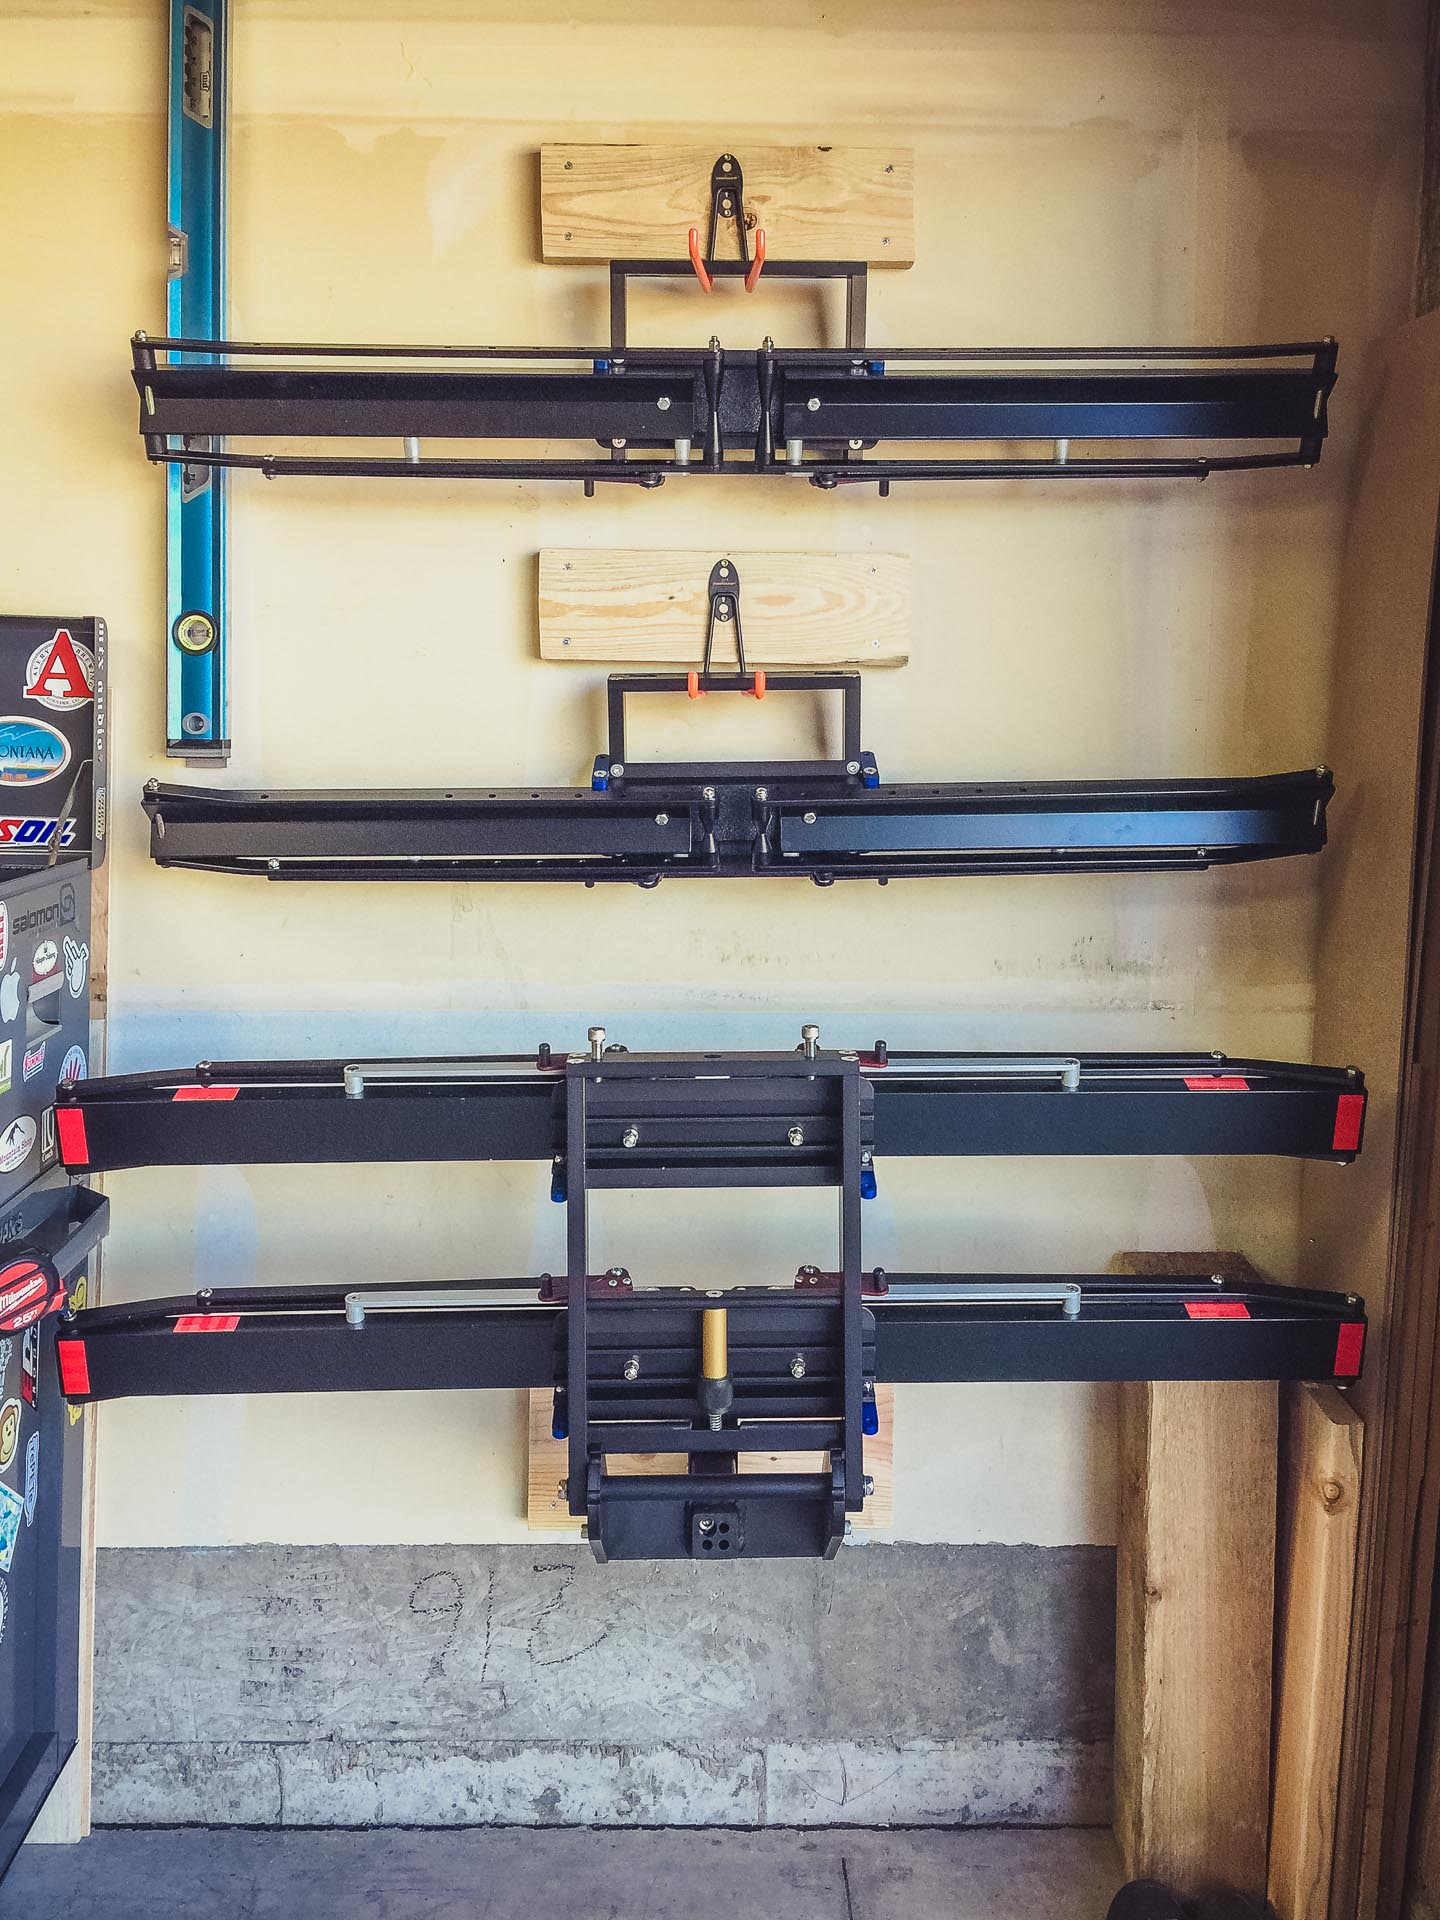 The Base Rack Bottom And Two Add On Racks Above Easily D In Garage